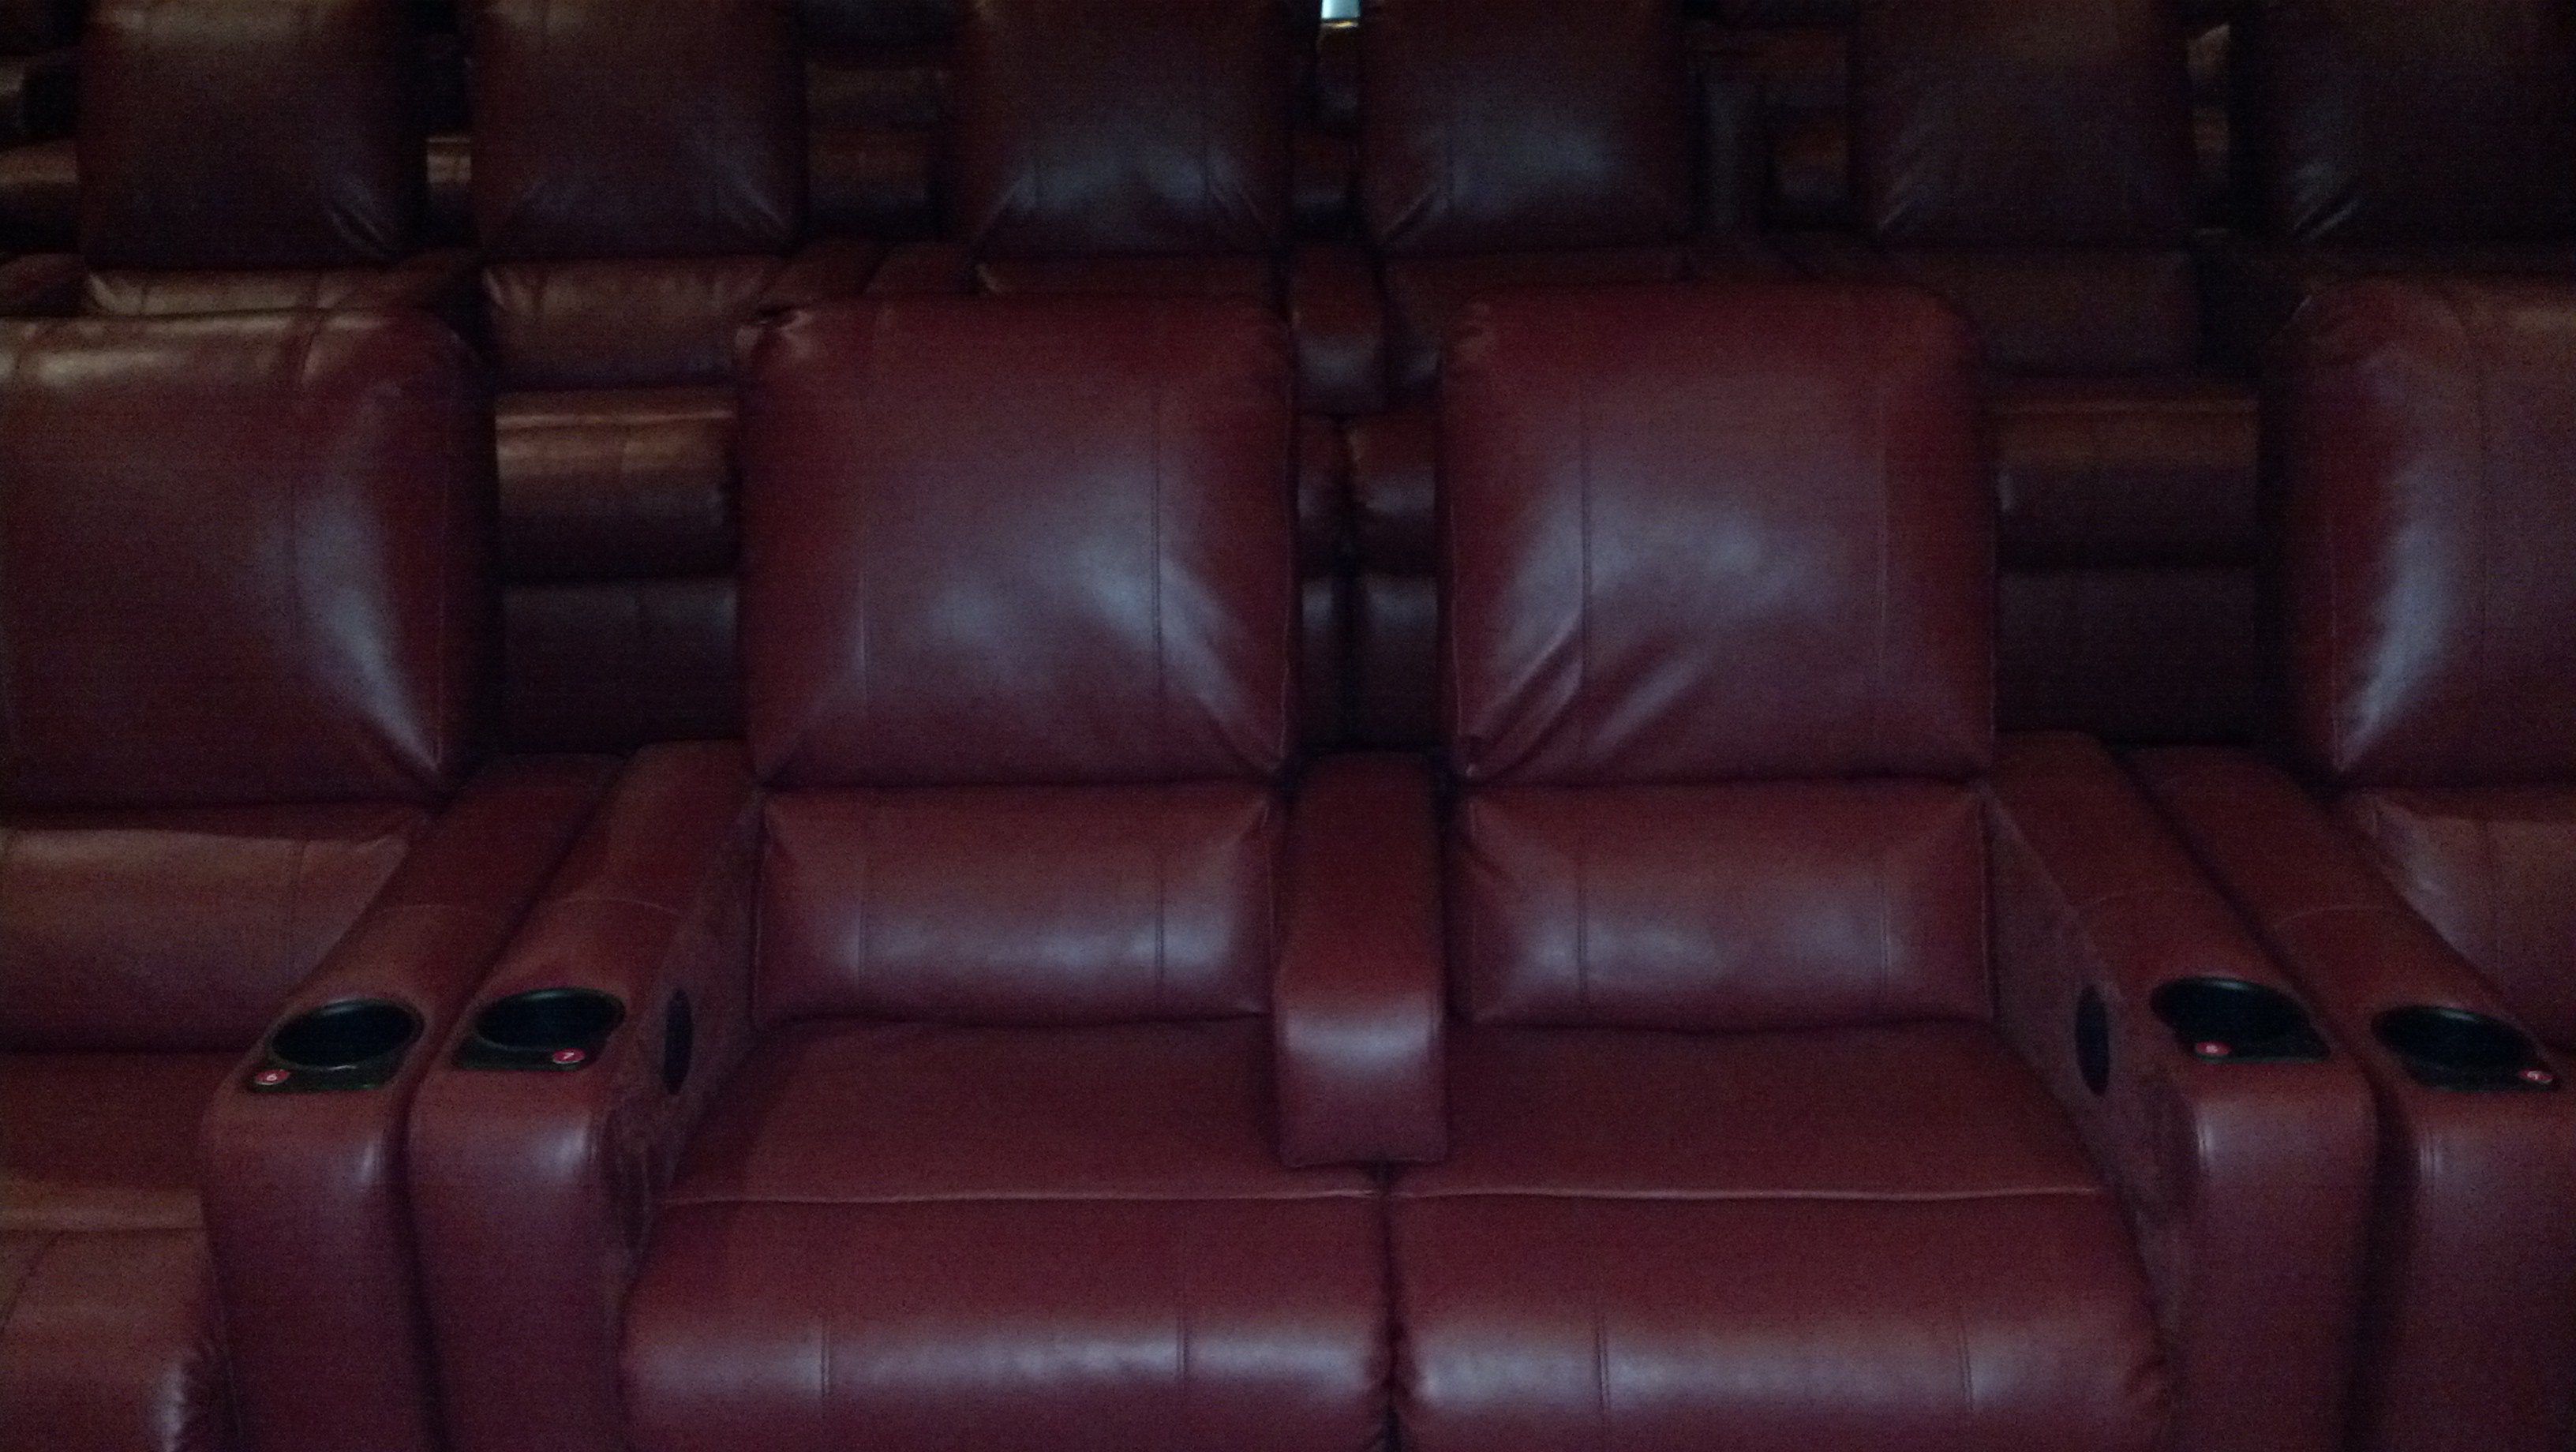 recliner gorgeous nj chair full movie theater nyc near county maryland me orange size colorado of reclining theatre brooklyn